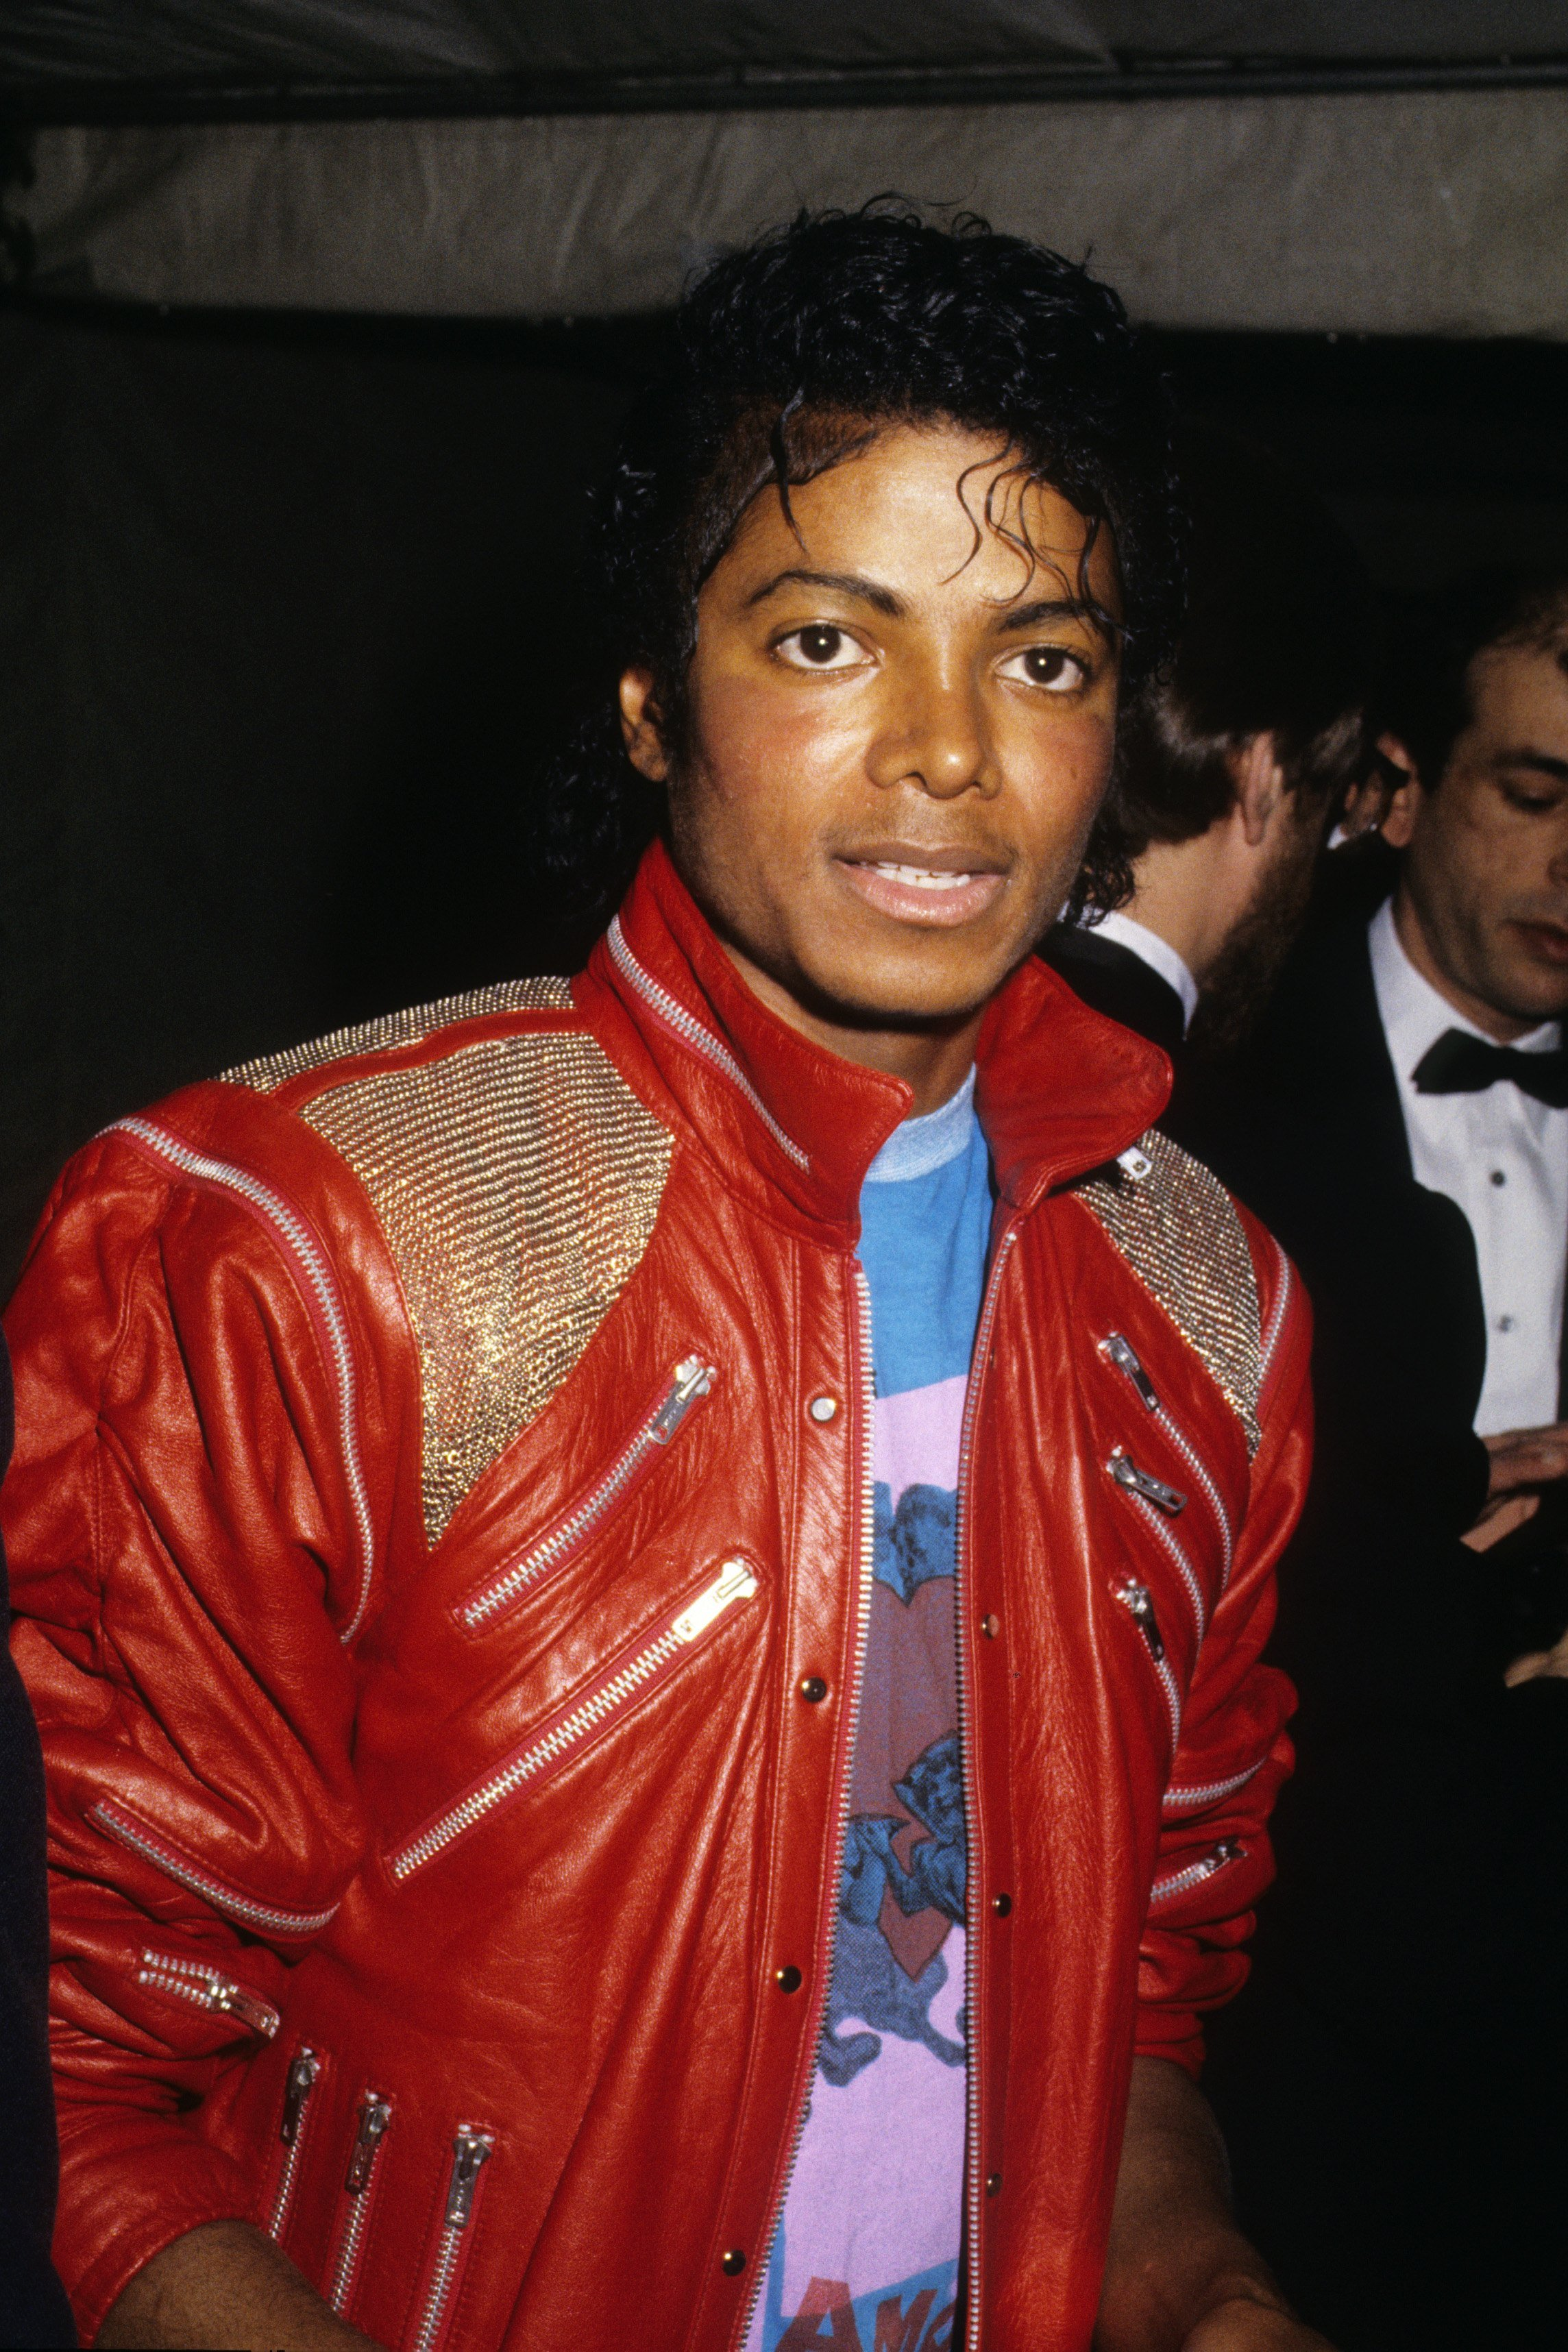 Musician Michael Jackson in Los Angeles circa 1990. | Source: Getty Images